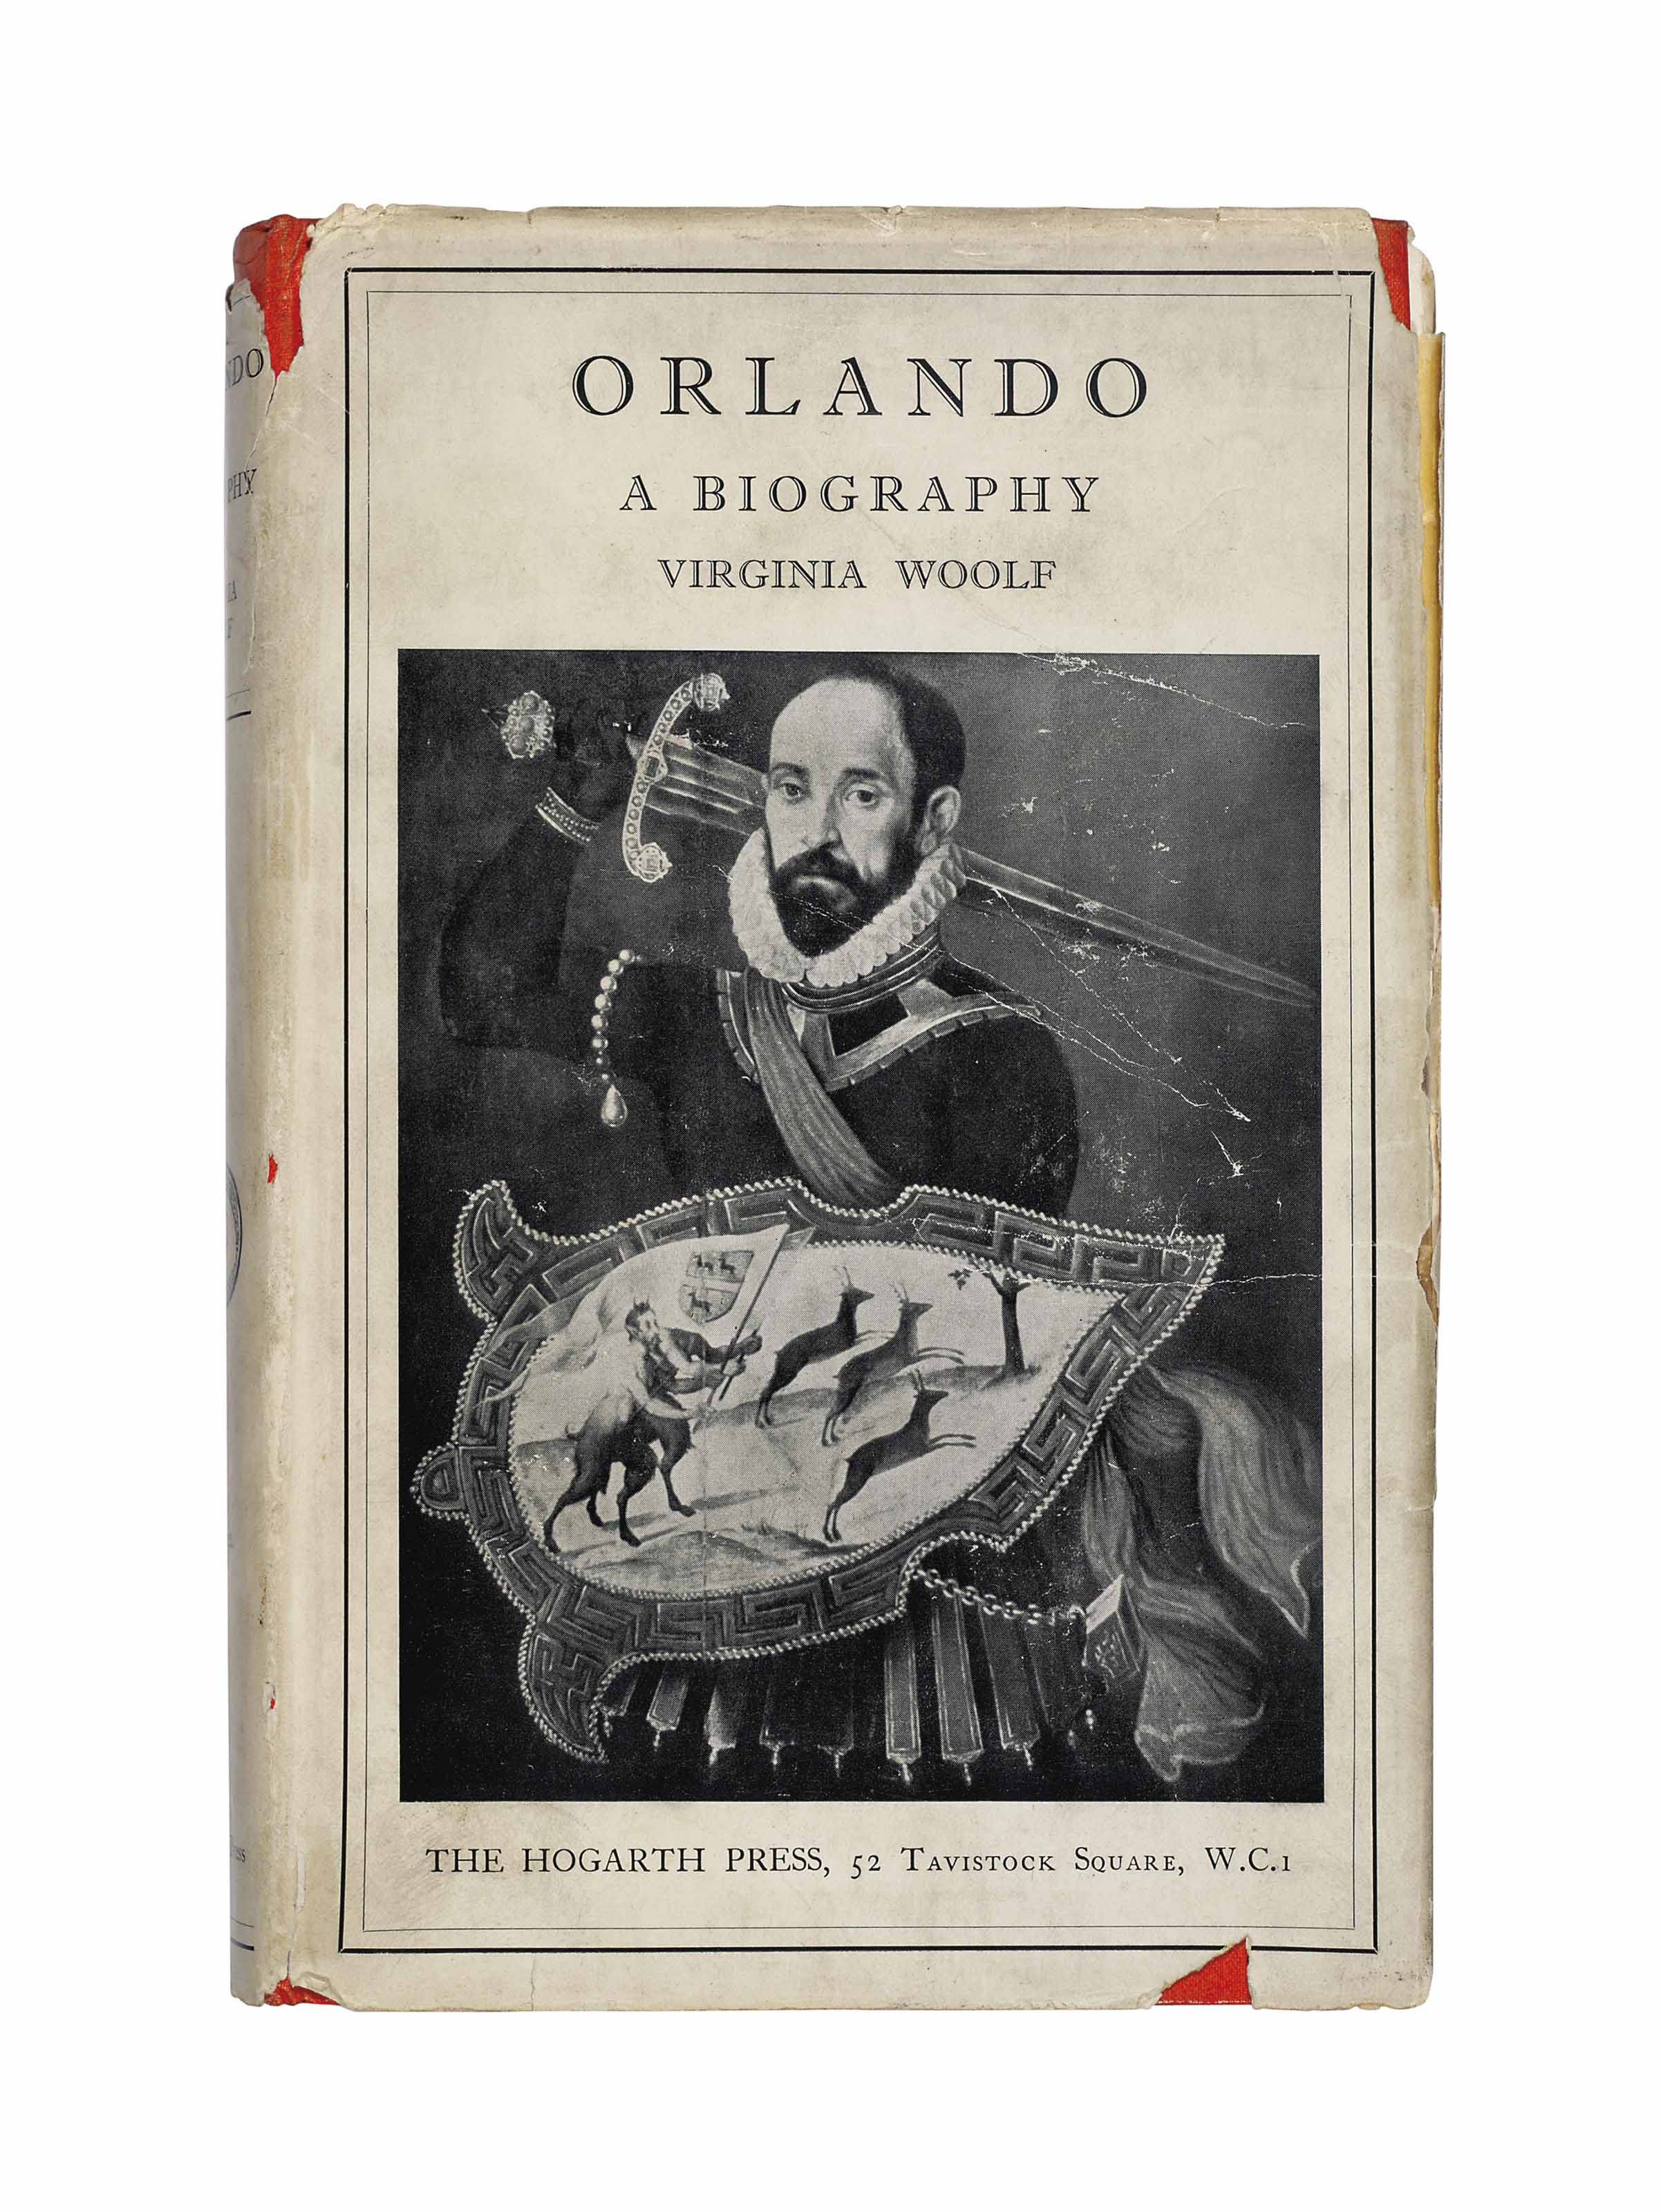 WOOLF, Virginia (1882-1941). Orlando. London: The Hogarth Press, 1928.